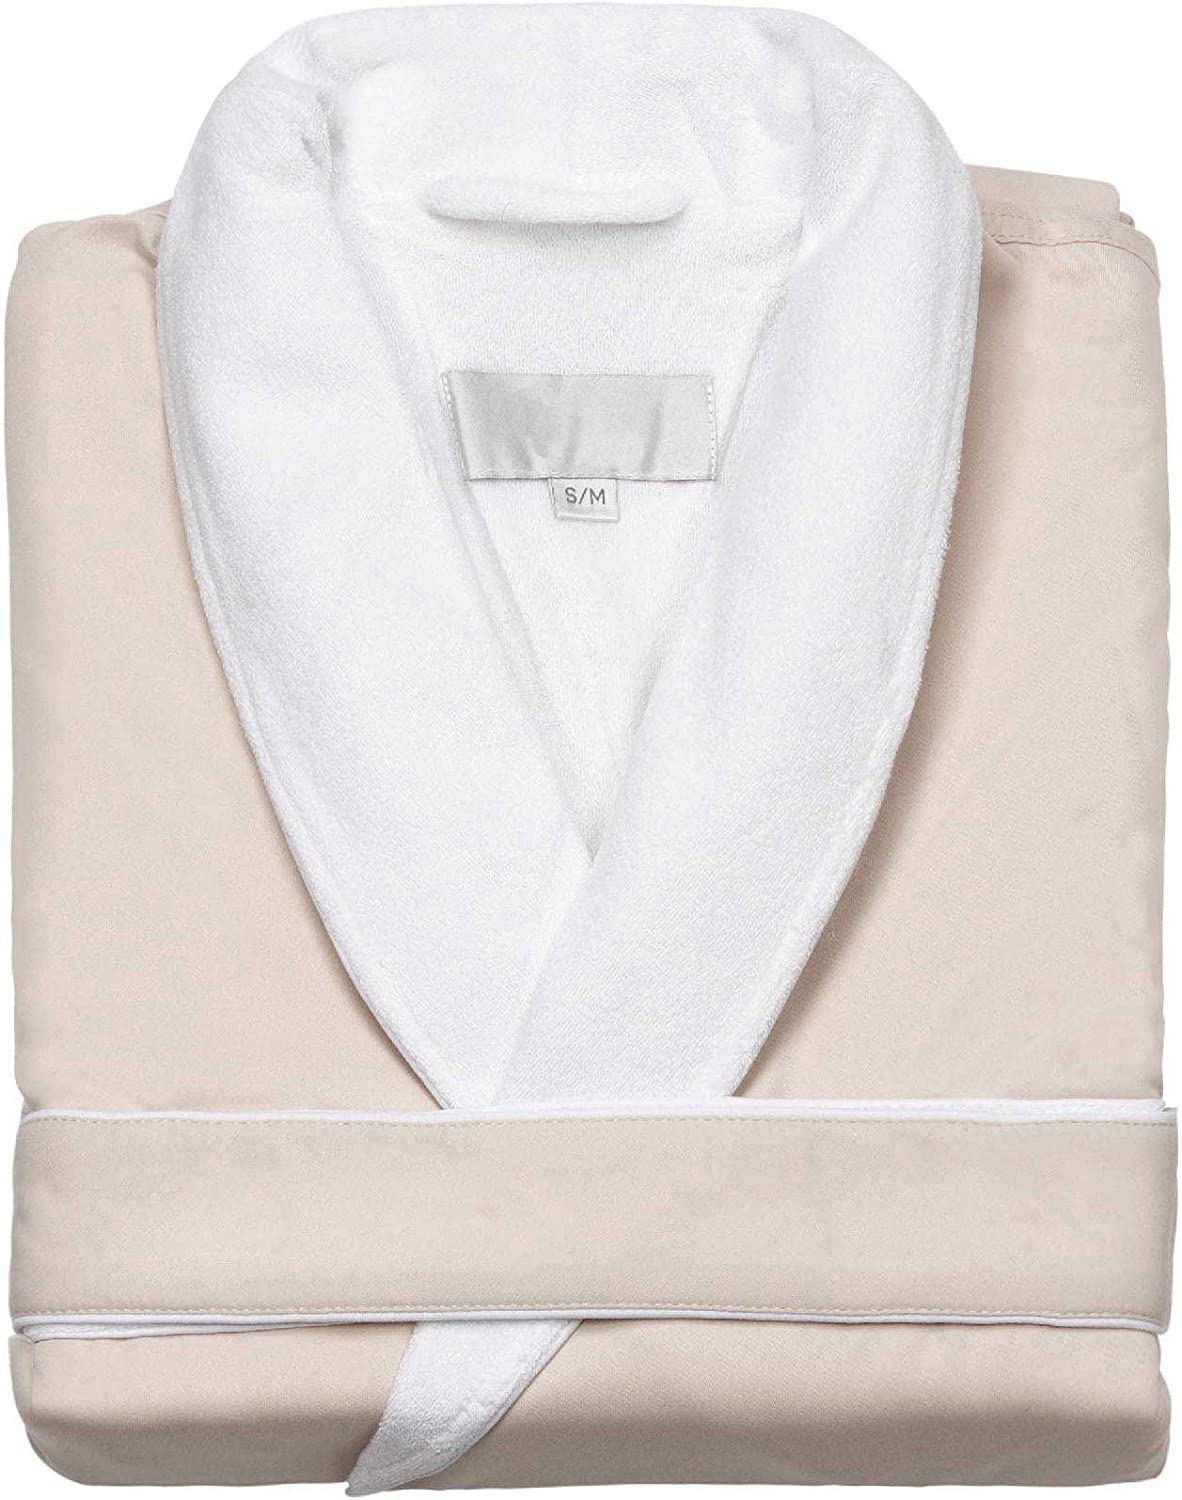 Home Spa Microfiber Velour Lined Bath Robe  Unisex Large Robe, Cream